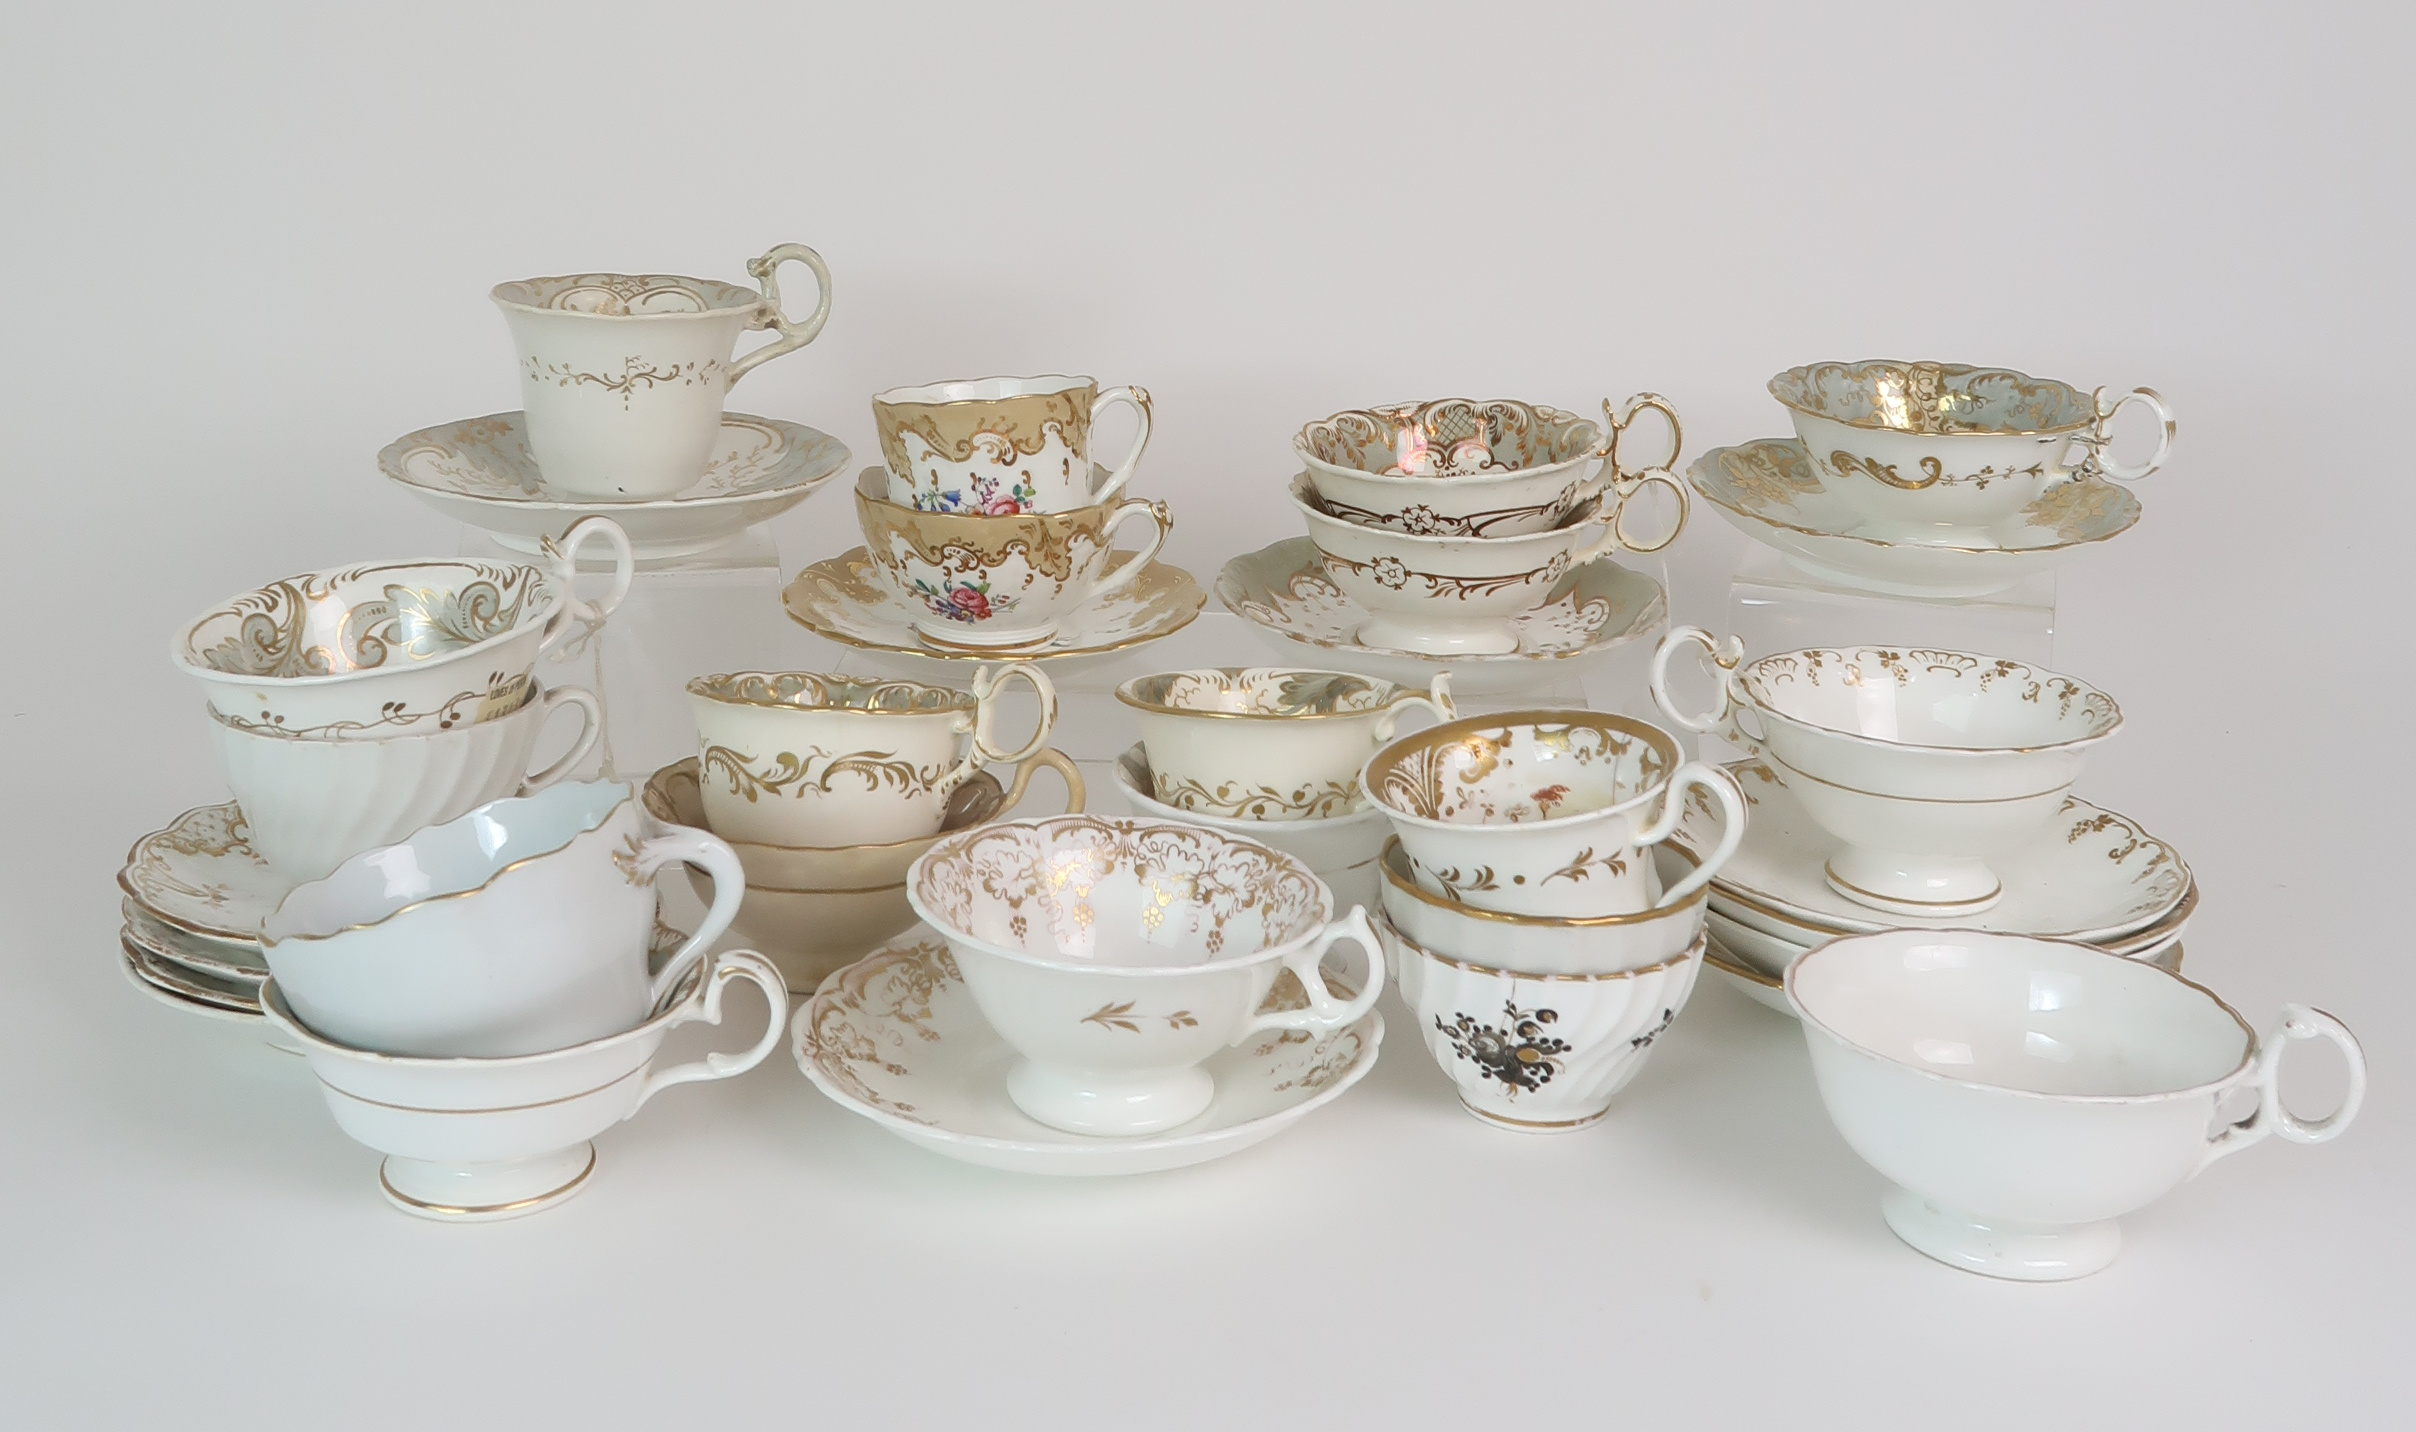 A COLLECTION OF 19TH CENTURY ENGLISH TEA AND COFFEE WARES the white ground with either grey and gilt - Image 15 of 22